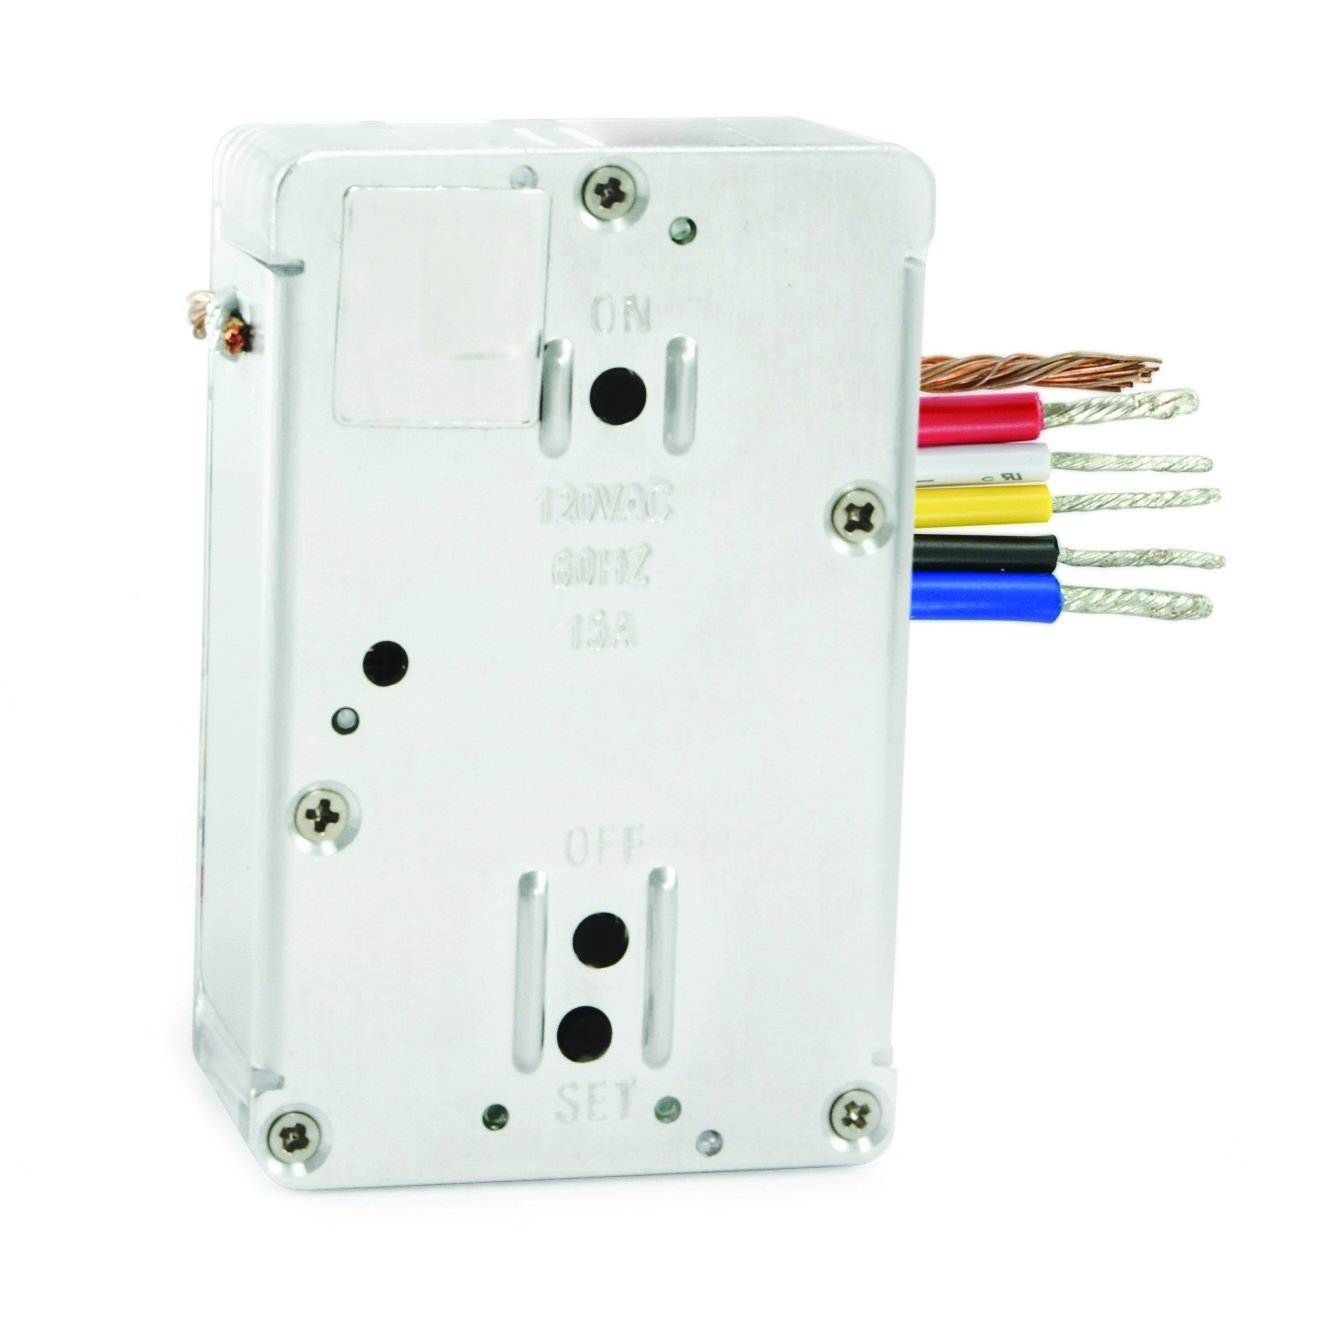 Smarthome 2475S2 In-LineLinc Relay INSTEON Non-Dimming On/Off ...